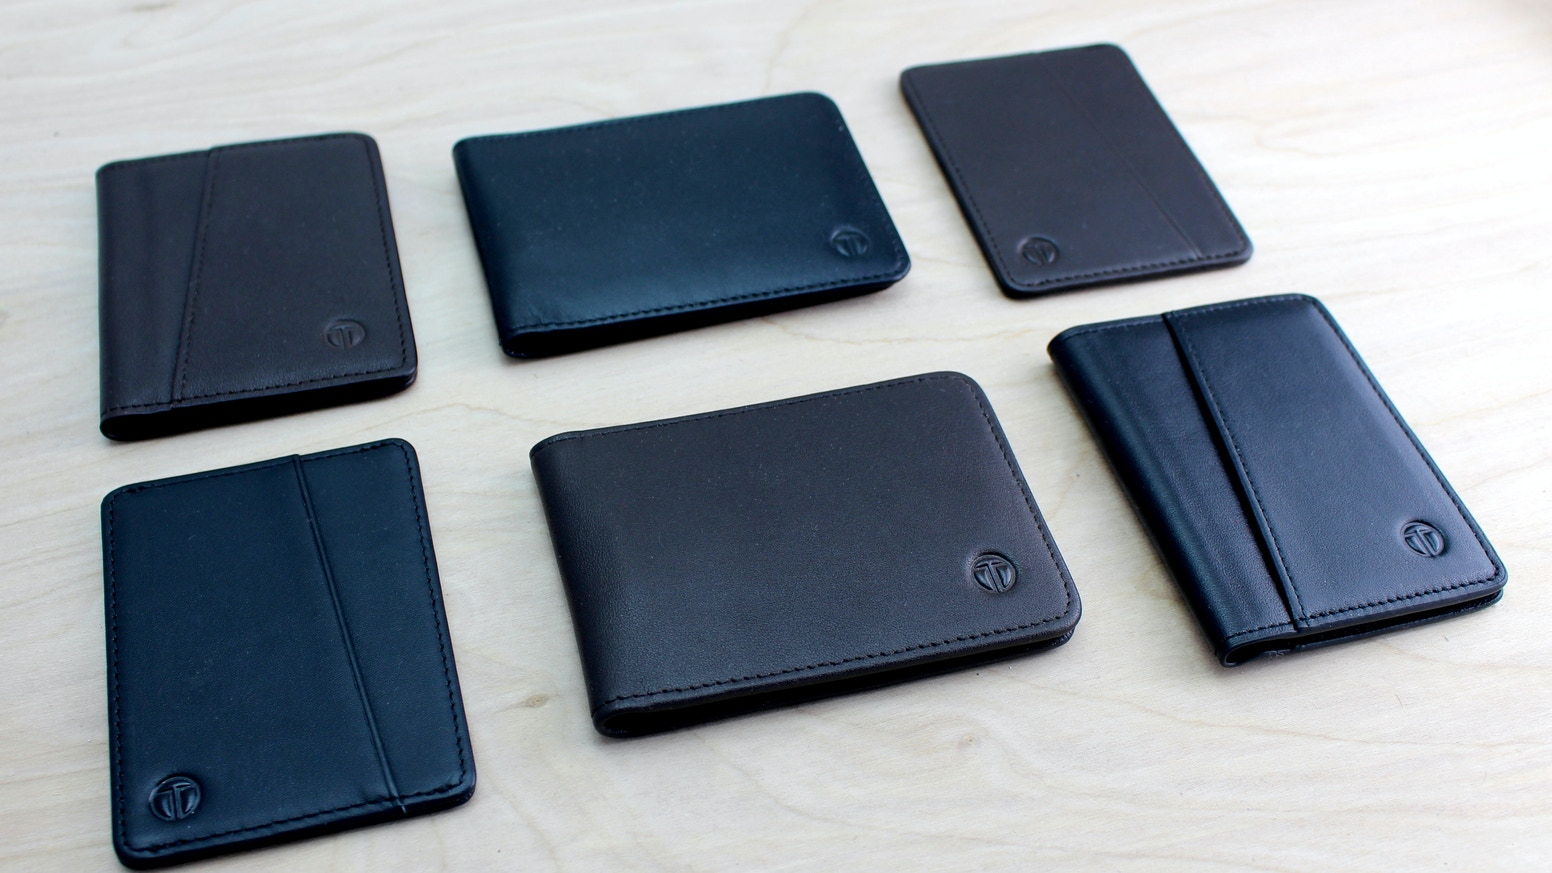 Classic bifold reinvented. All the essentials you need in a wallet plus extras, RFID protection/access, pull tab, cash slot and more.